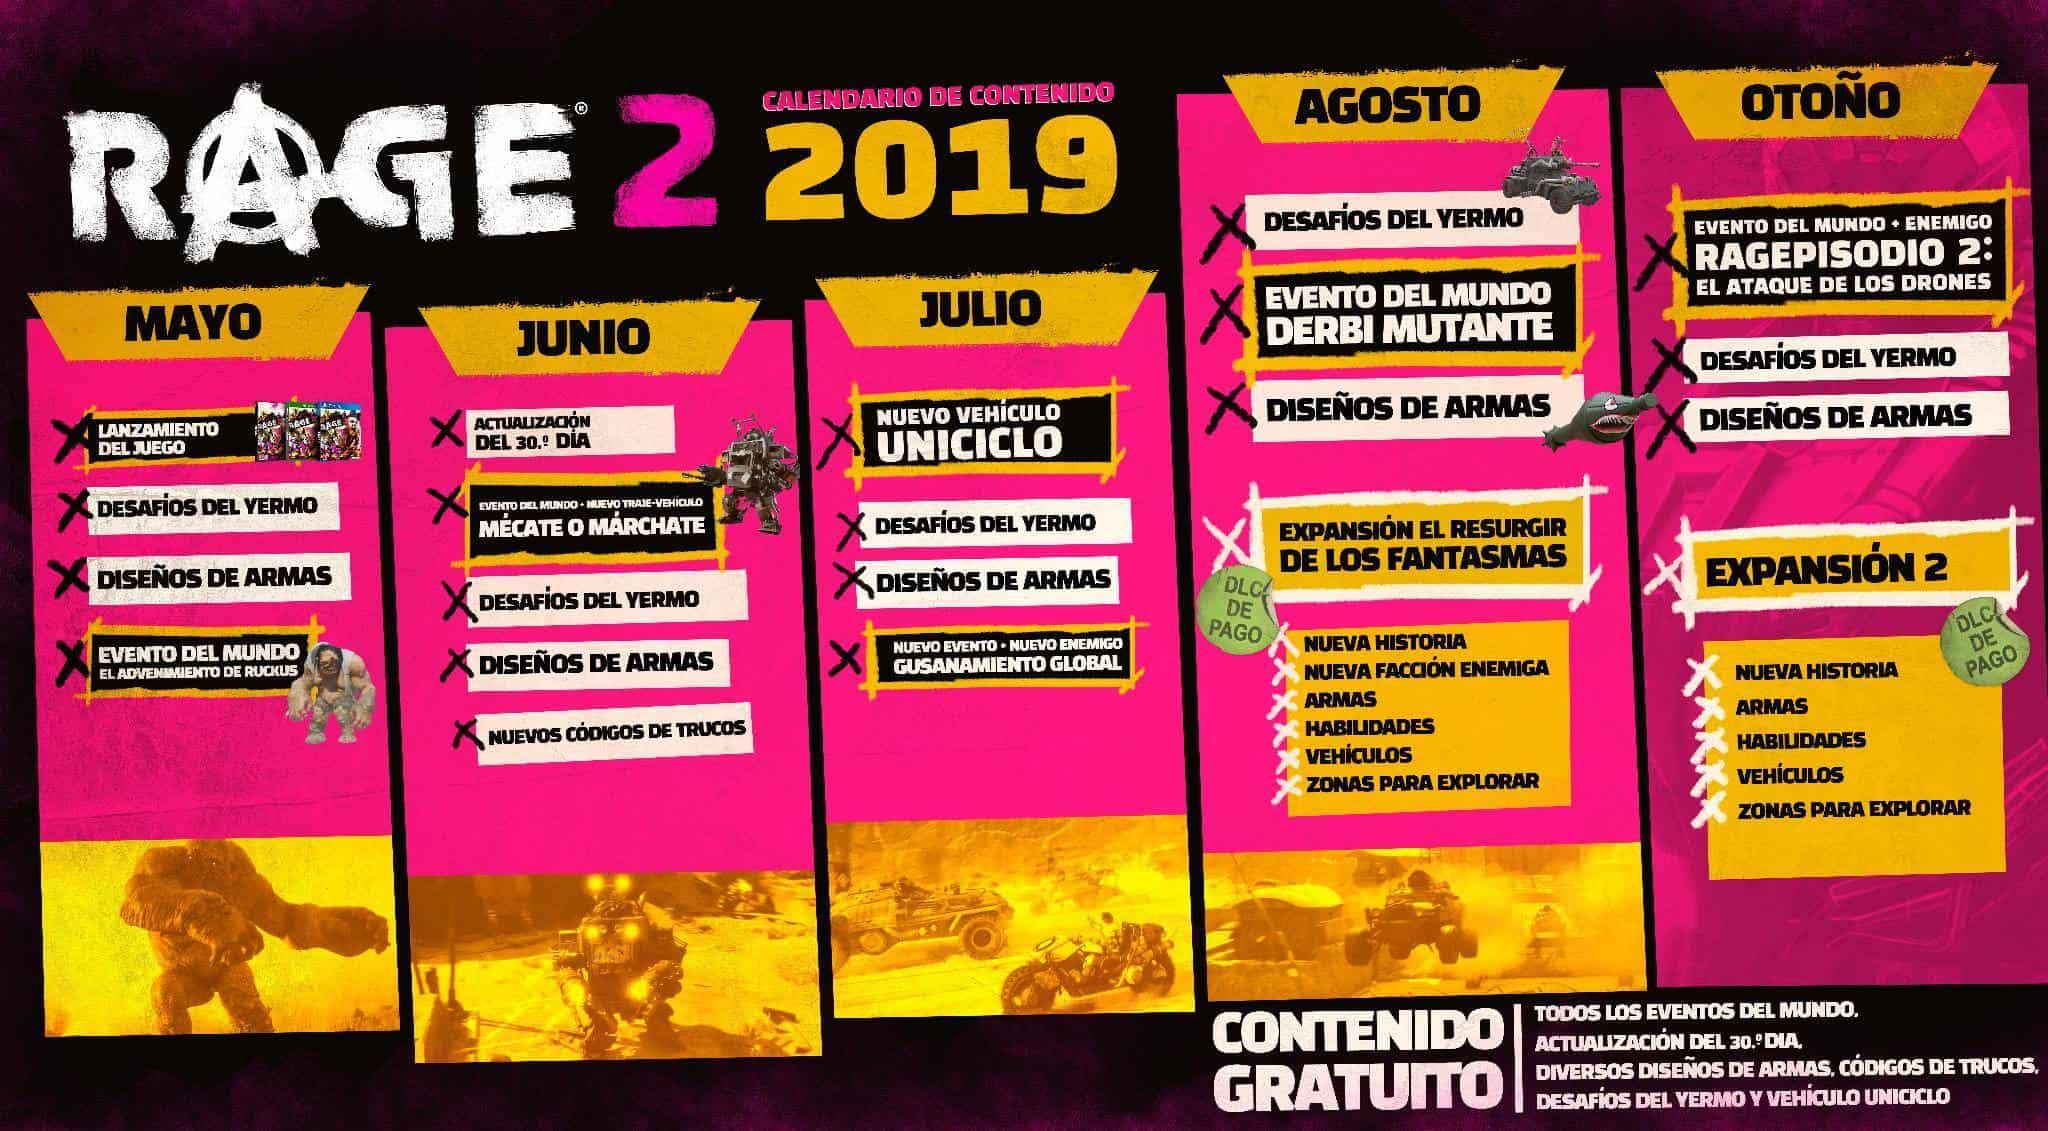 Rage 2 Roadmap 2019